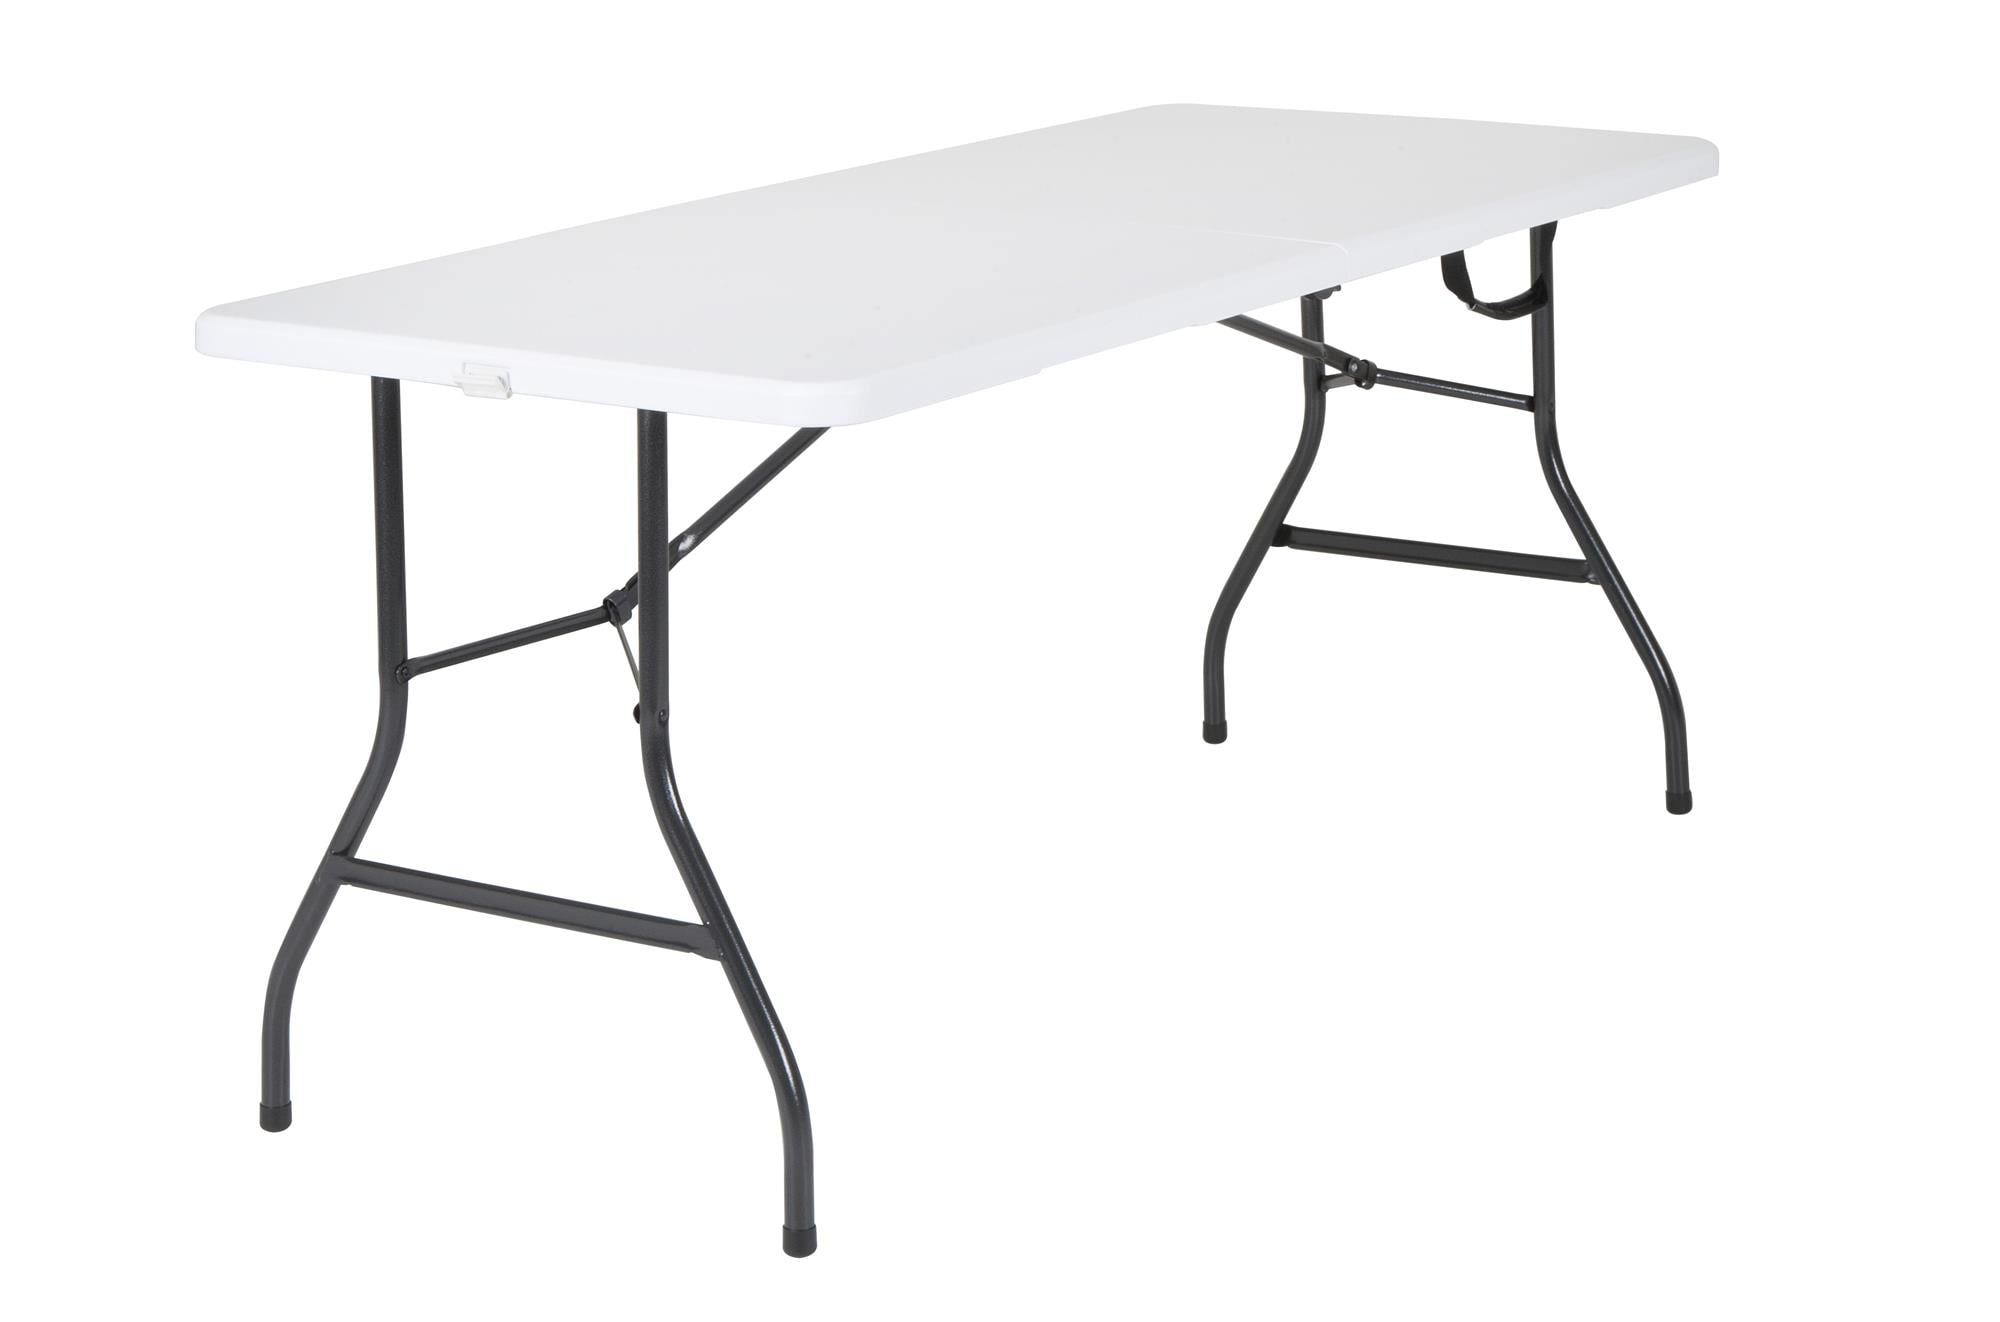 Mainstays 5 Foot Centerfold Folding Table, White - Walmart.com